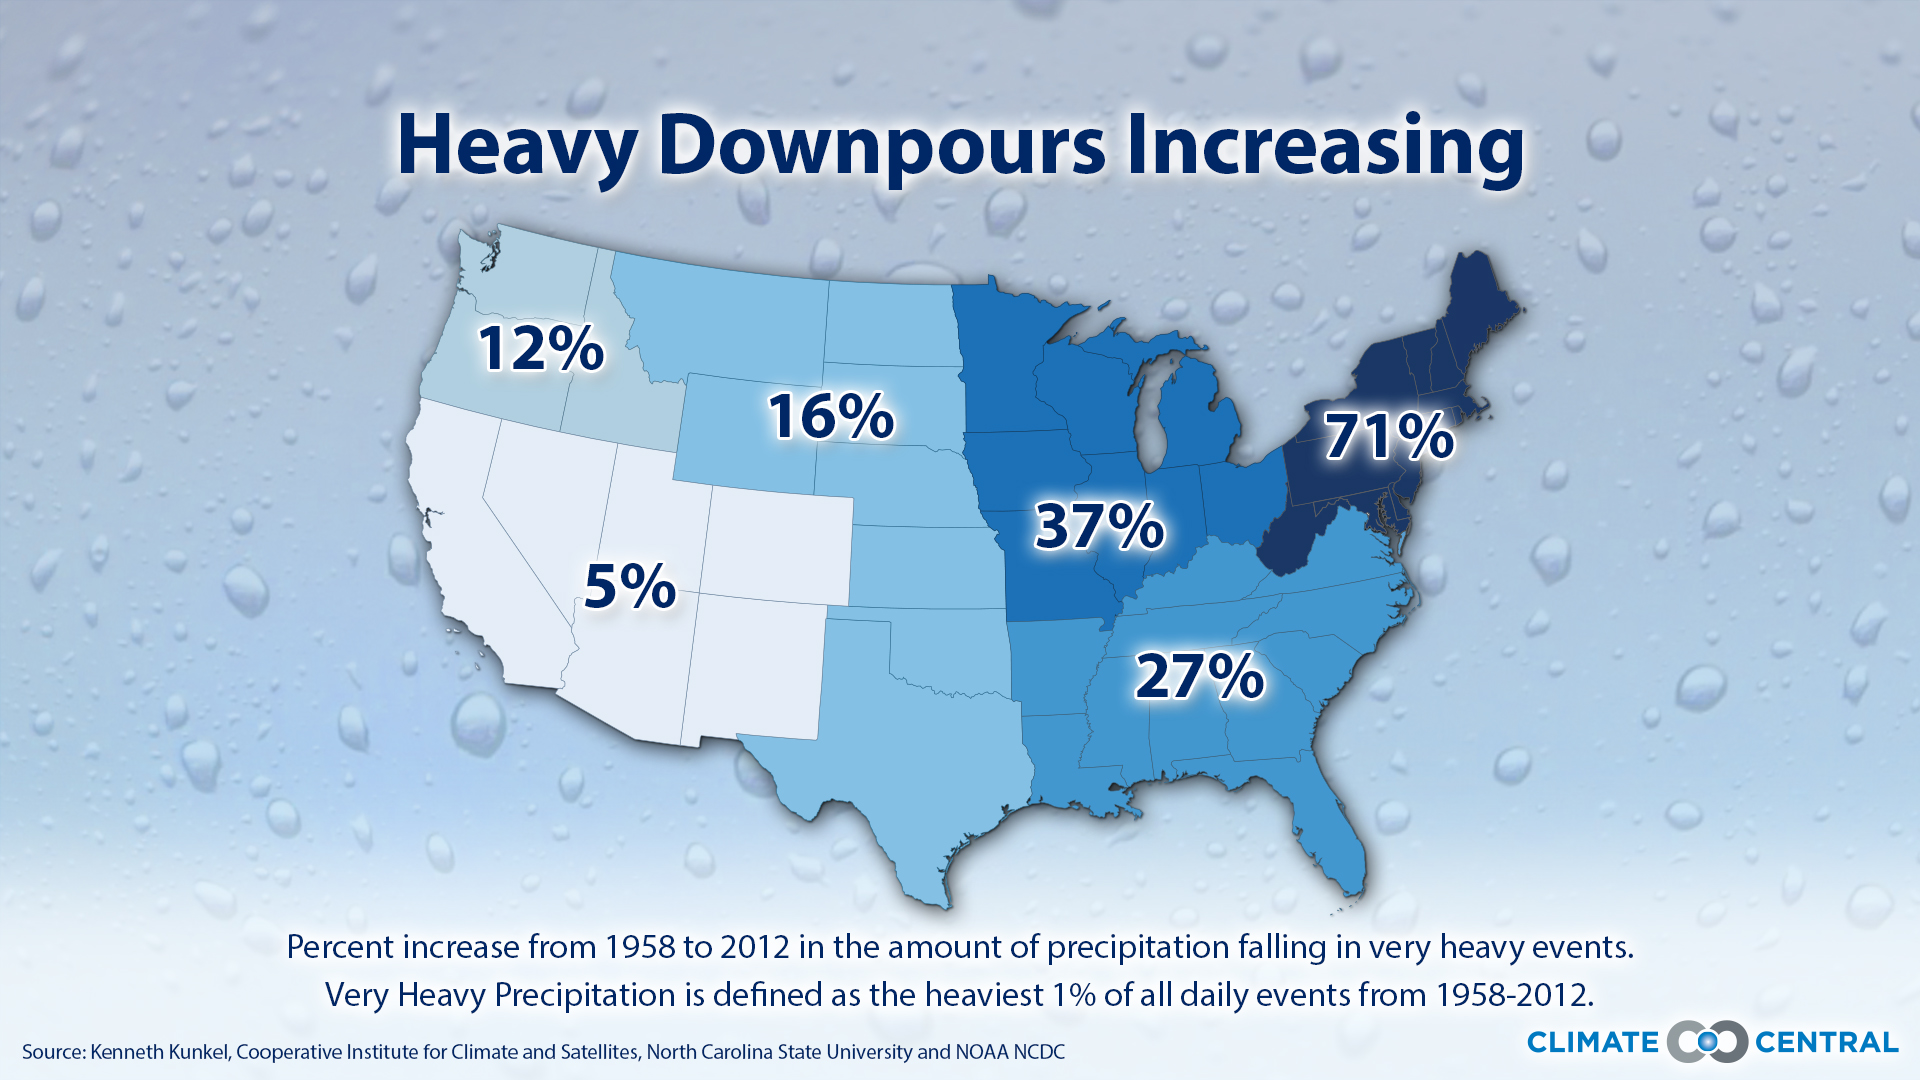 Heaviest Downpours Have Increased Since 1950